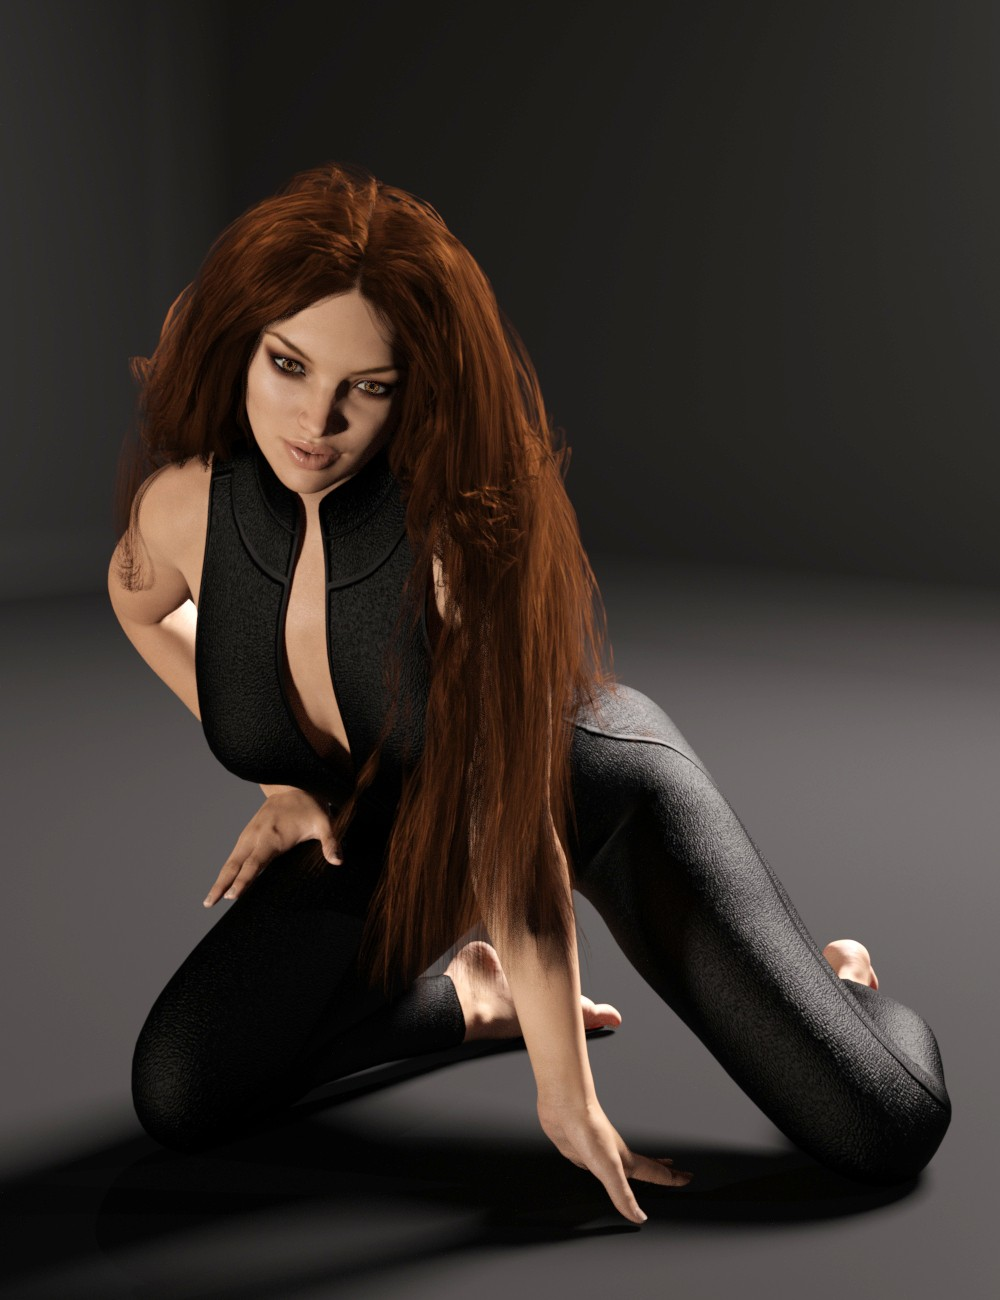 download daz studio 3 for free daz 3d free spirit hair